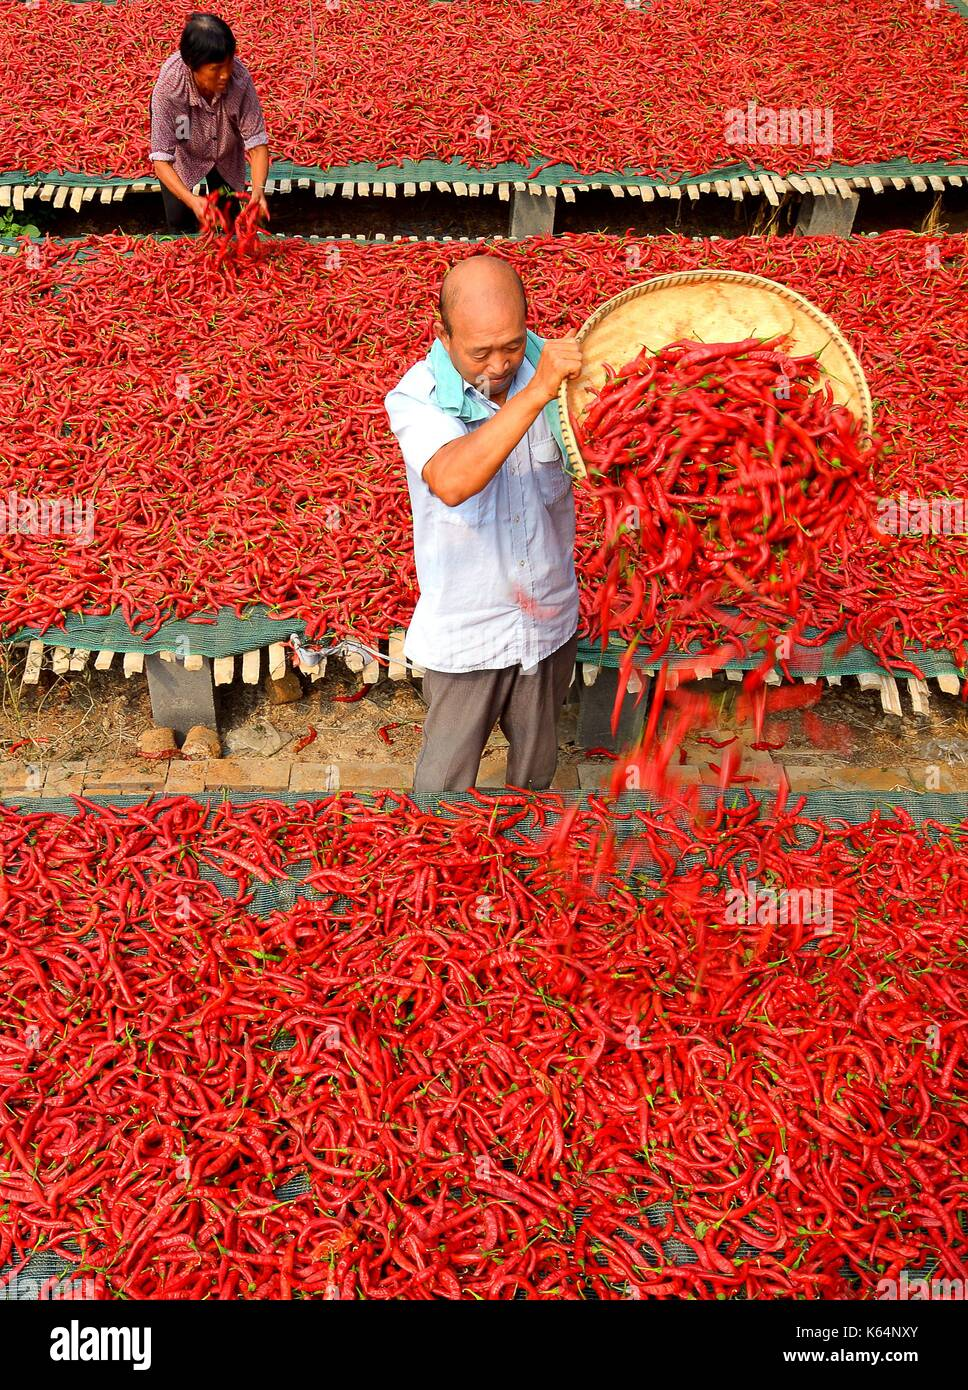 Handan, China's Hebei Province. 11th Sep, 2017. A villager airs chillies in Weiqing Village of Jize County in Handan, north China's Hebei Province, Sept. 11, 2017. Credit: Wang Xiao/Xinhua/Alamy Live News - Stock Image